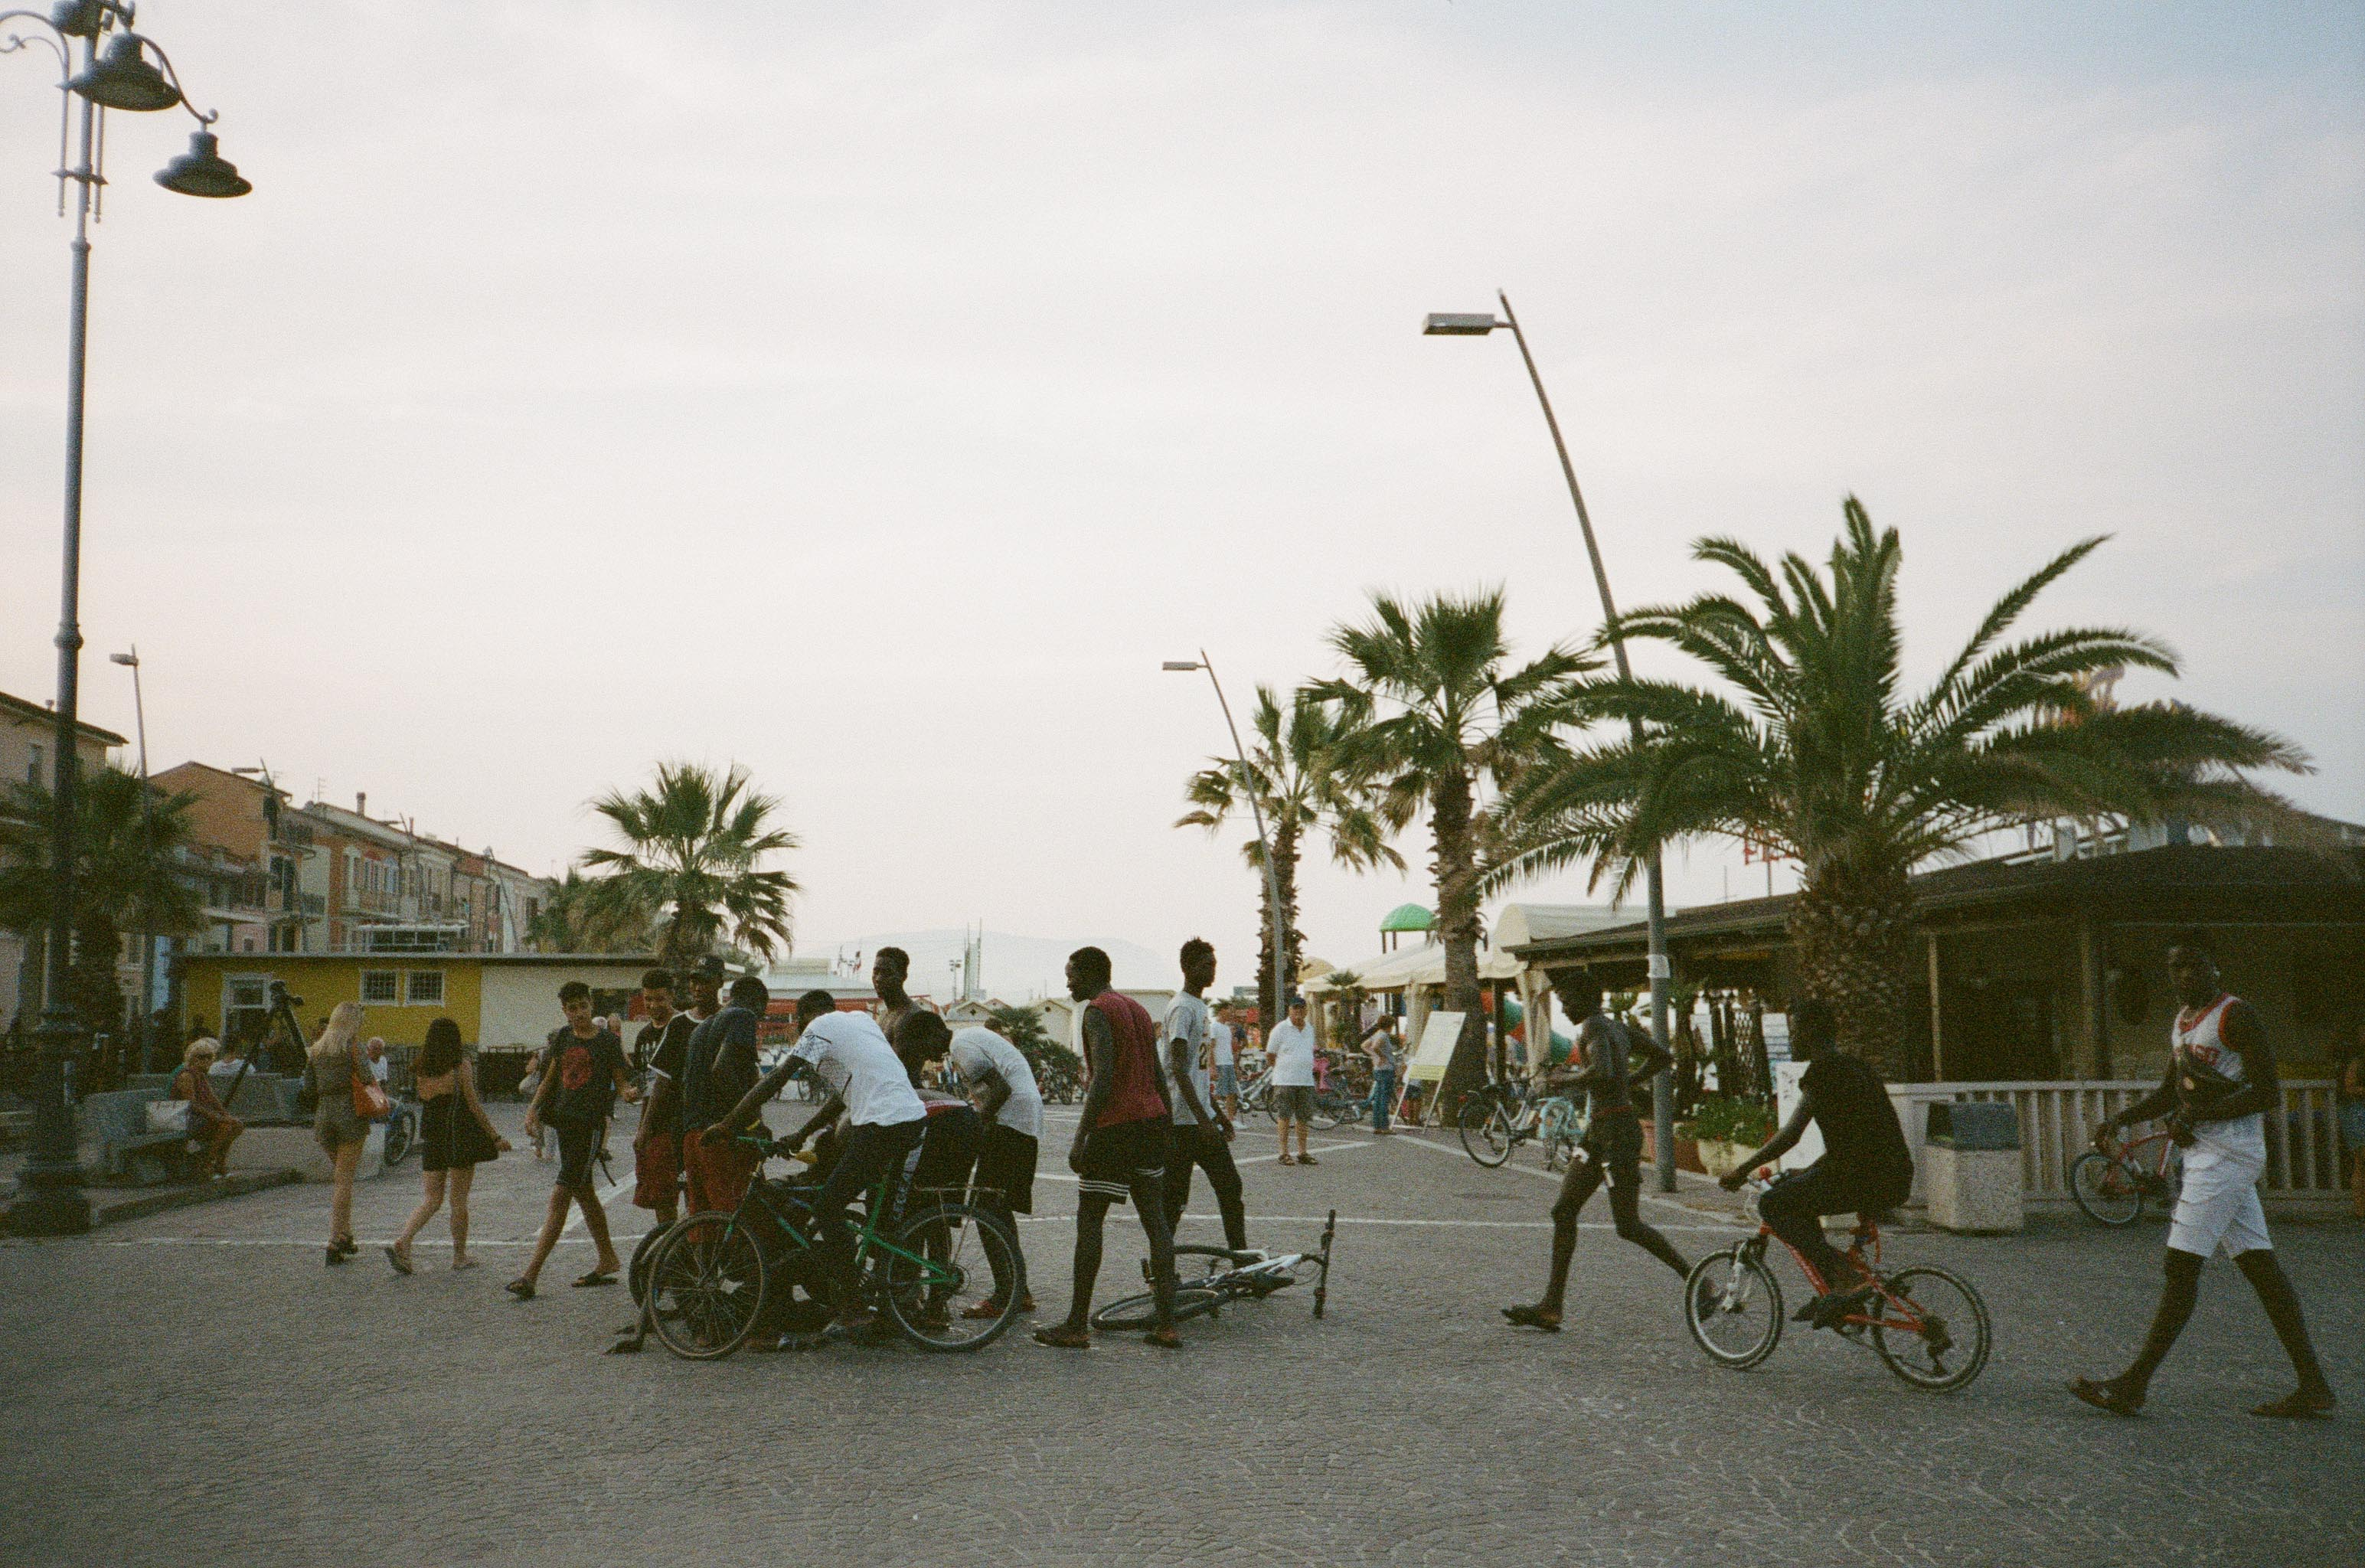 A busy scene at a beach boardwalk with a group of young Black men in the foreground.